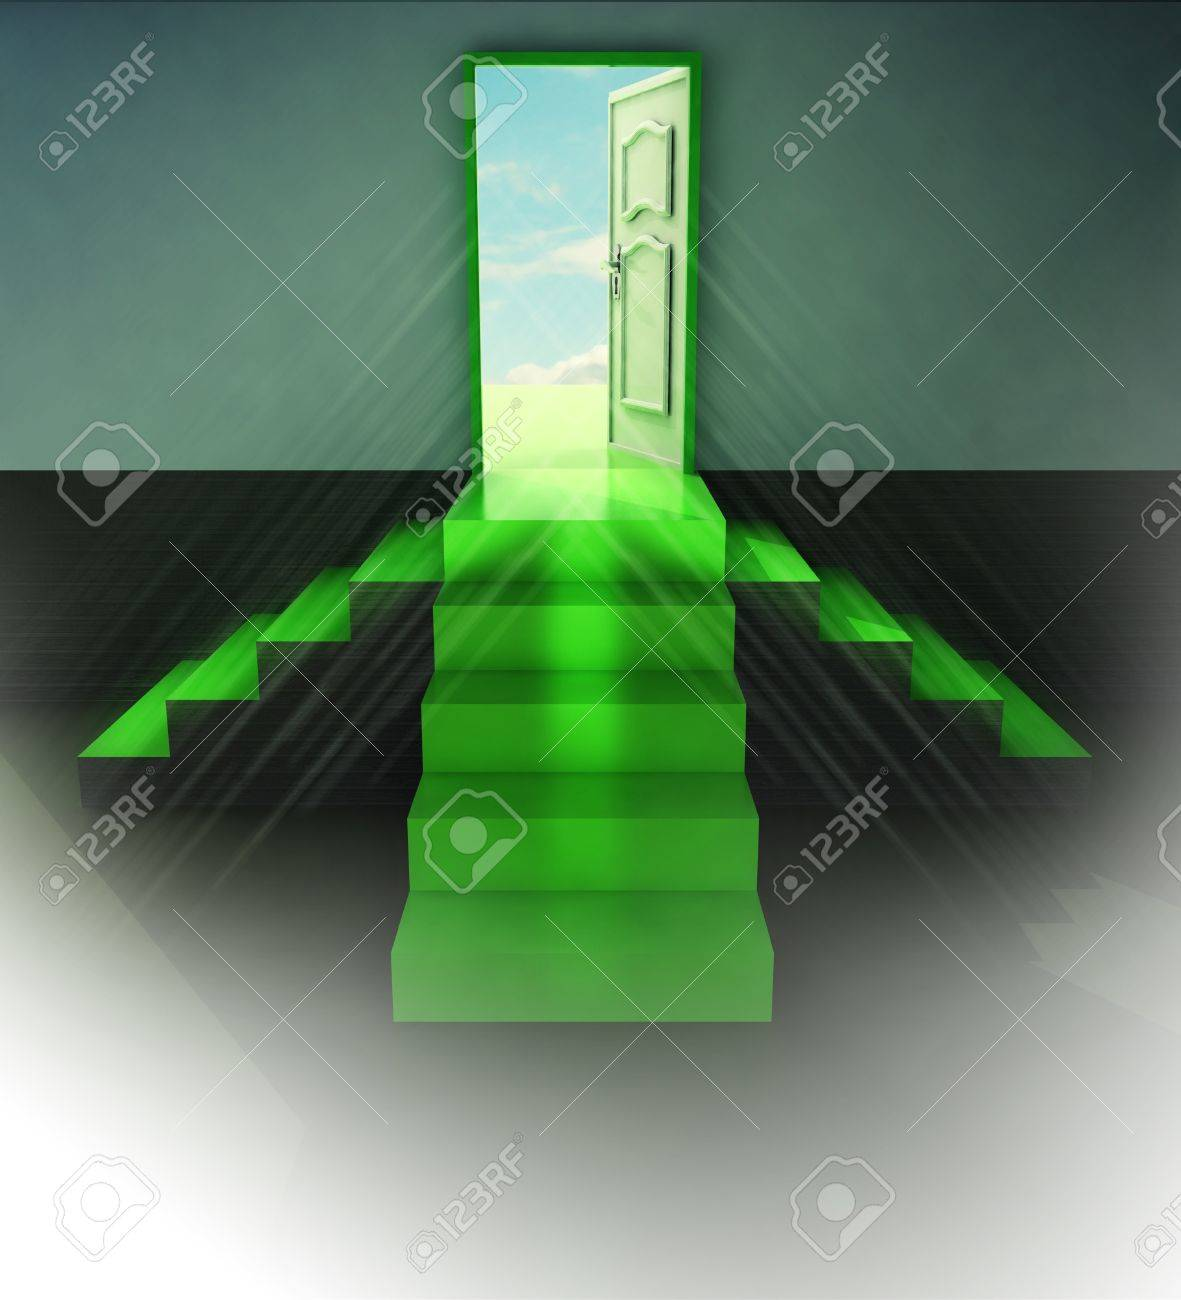 three green staircase doorway central view flare illustration Stock Illustration - 17351532